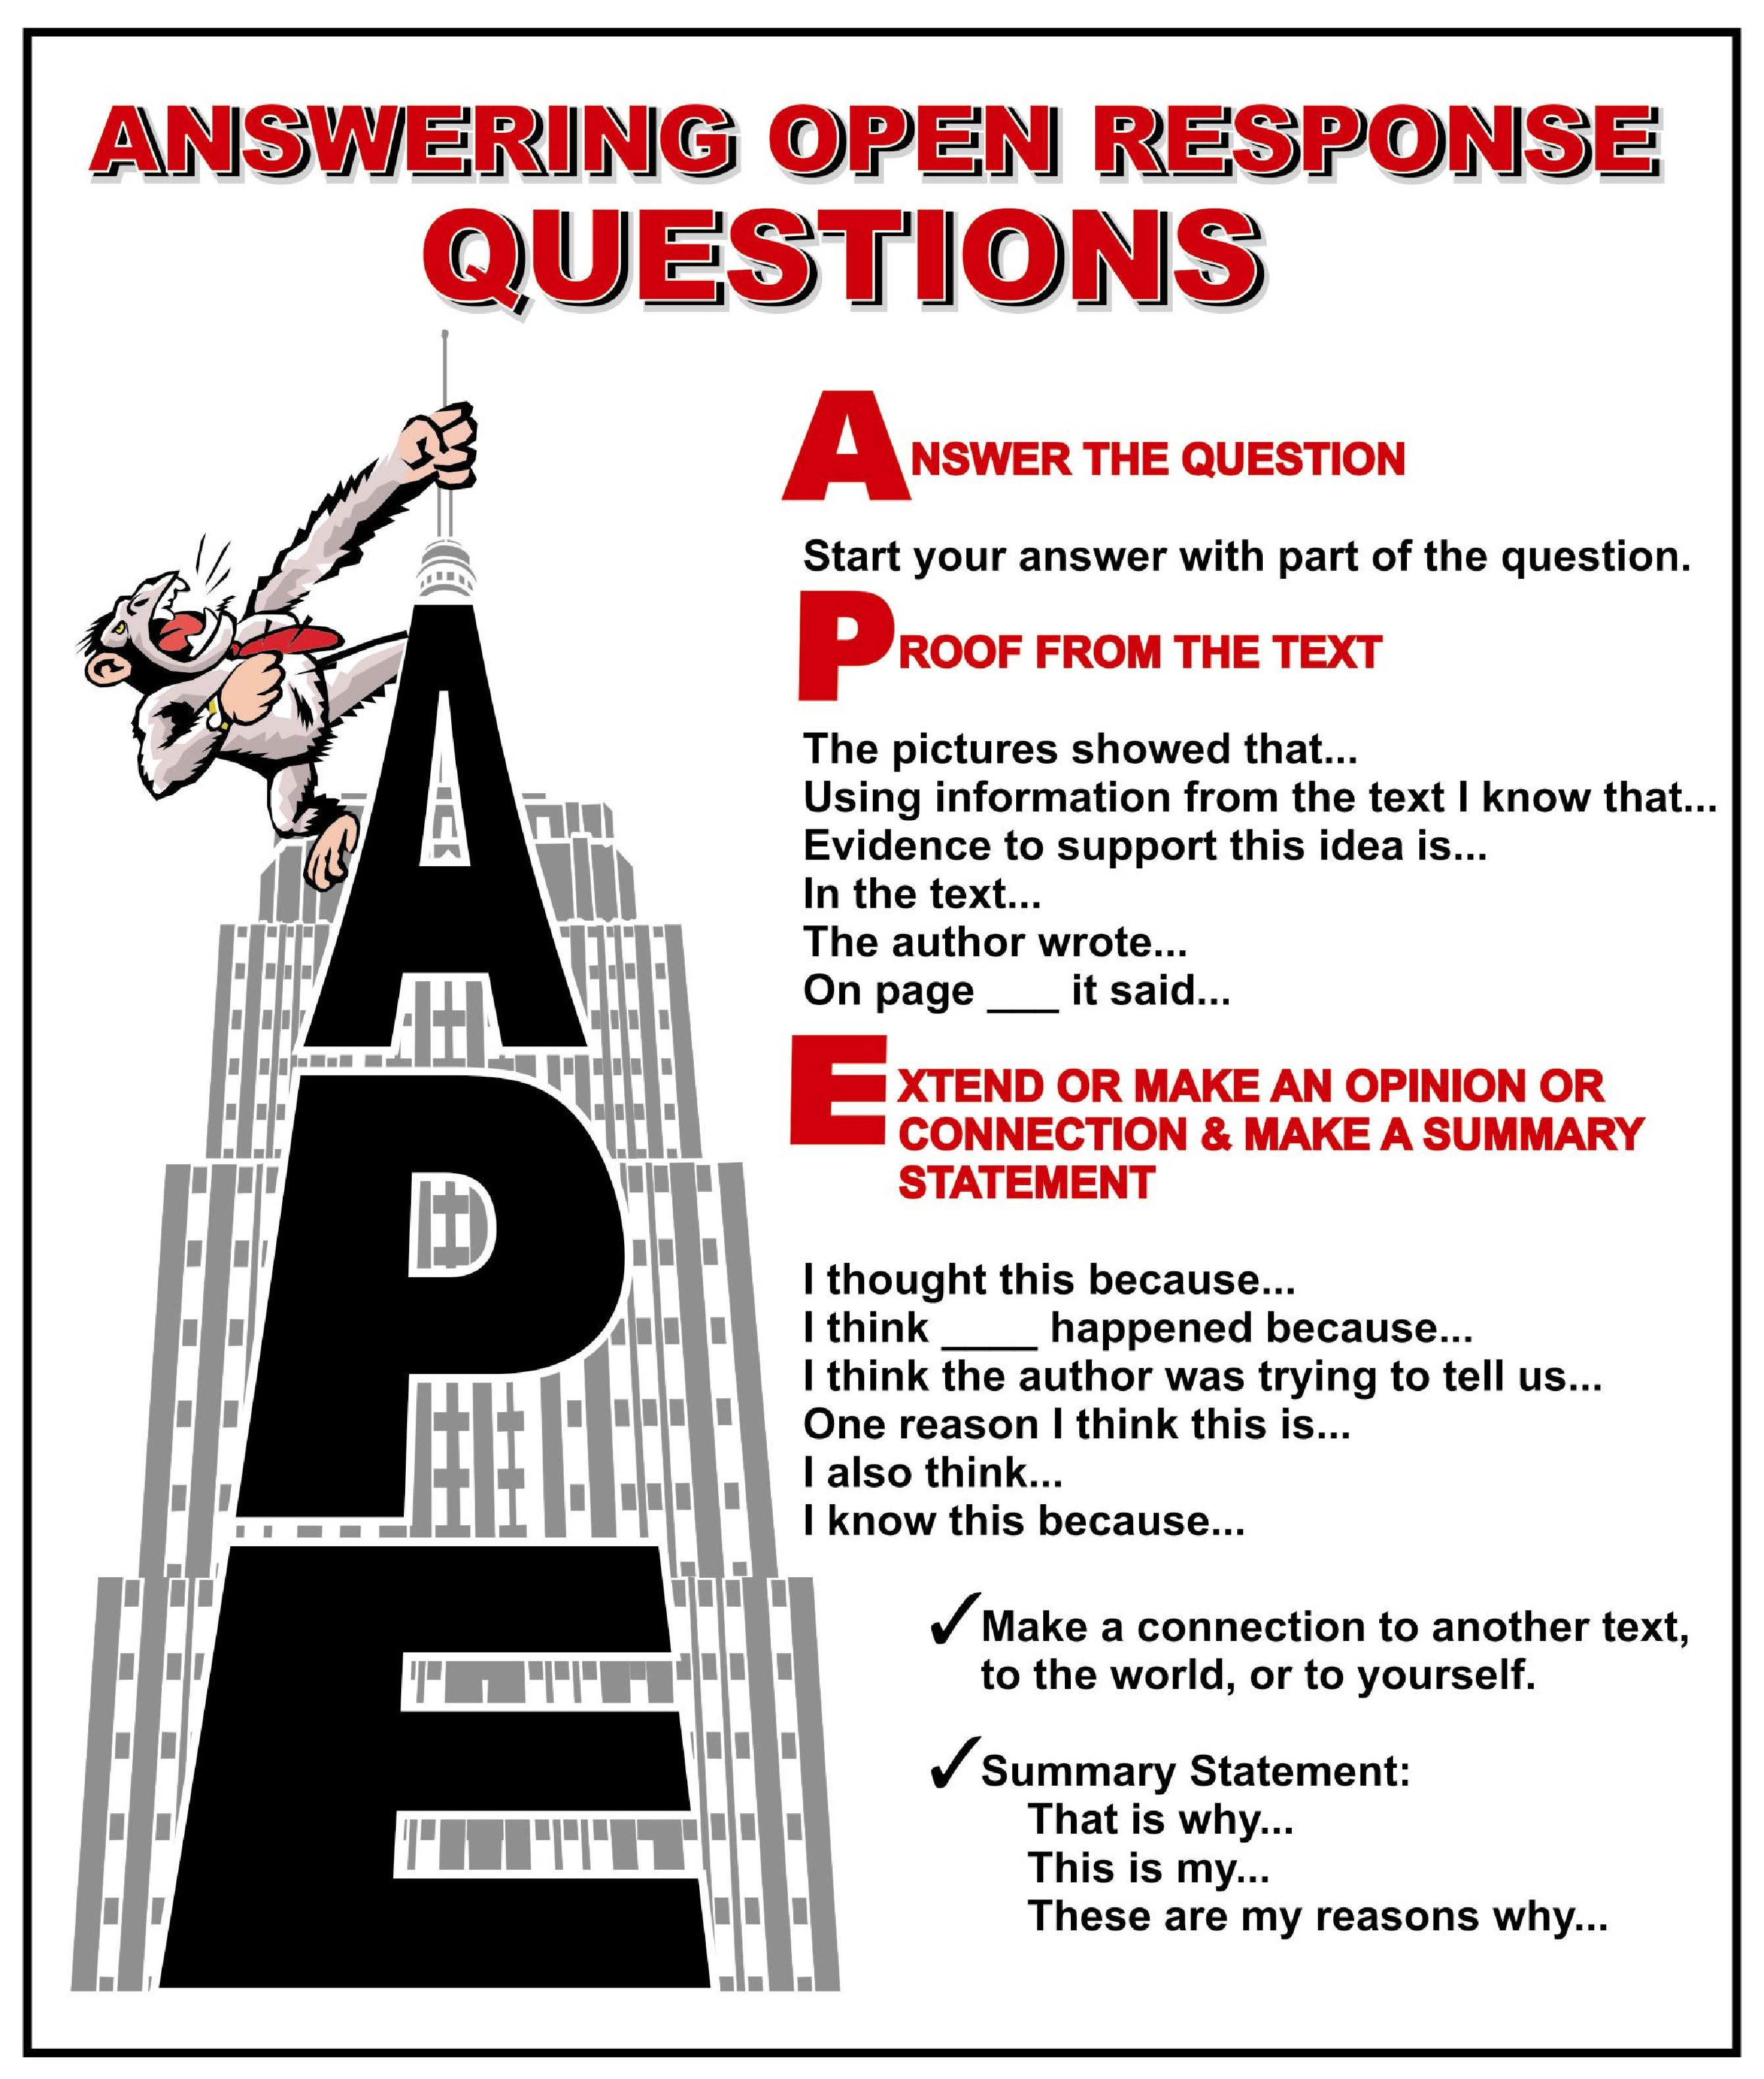 aces strategy for answering short answer responses examples